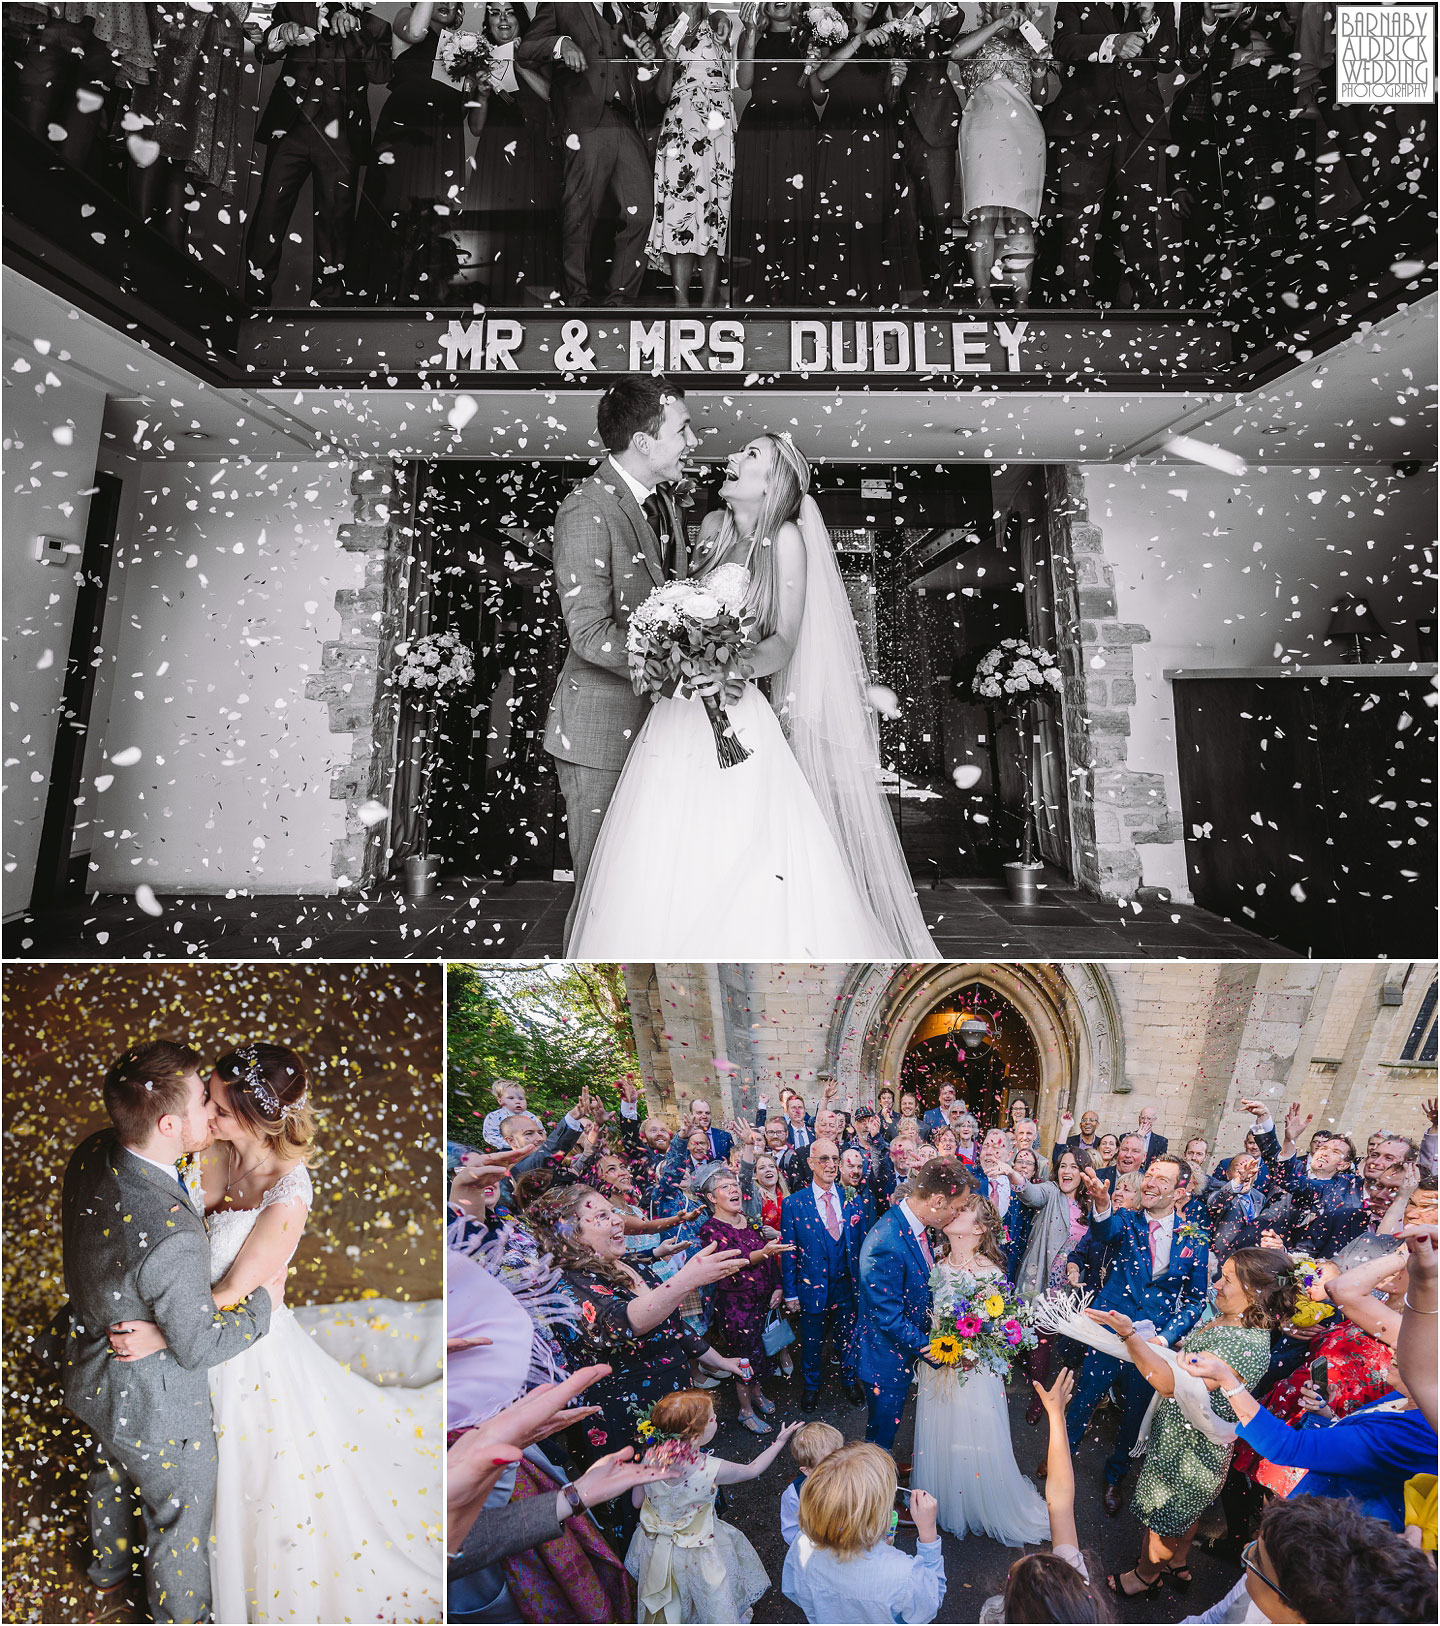 Priory Cottages Confetti photo